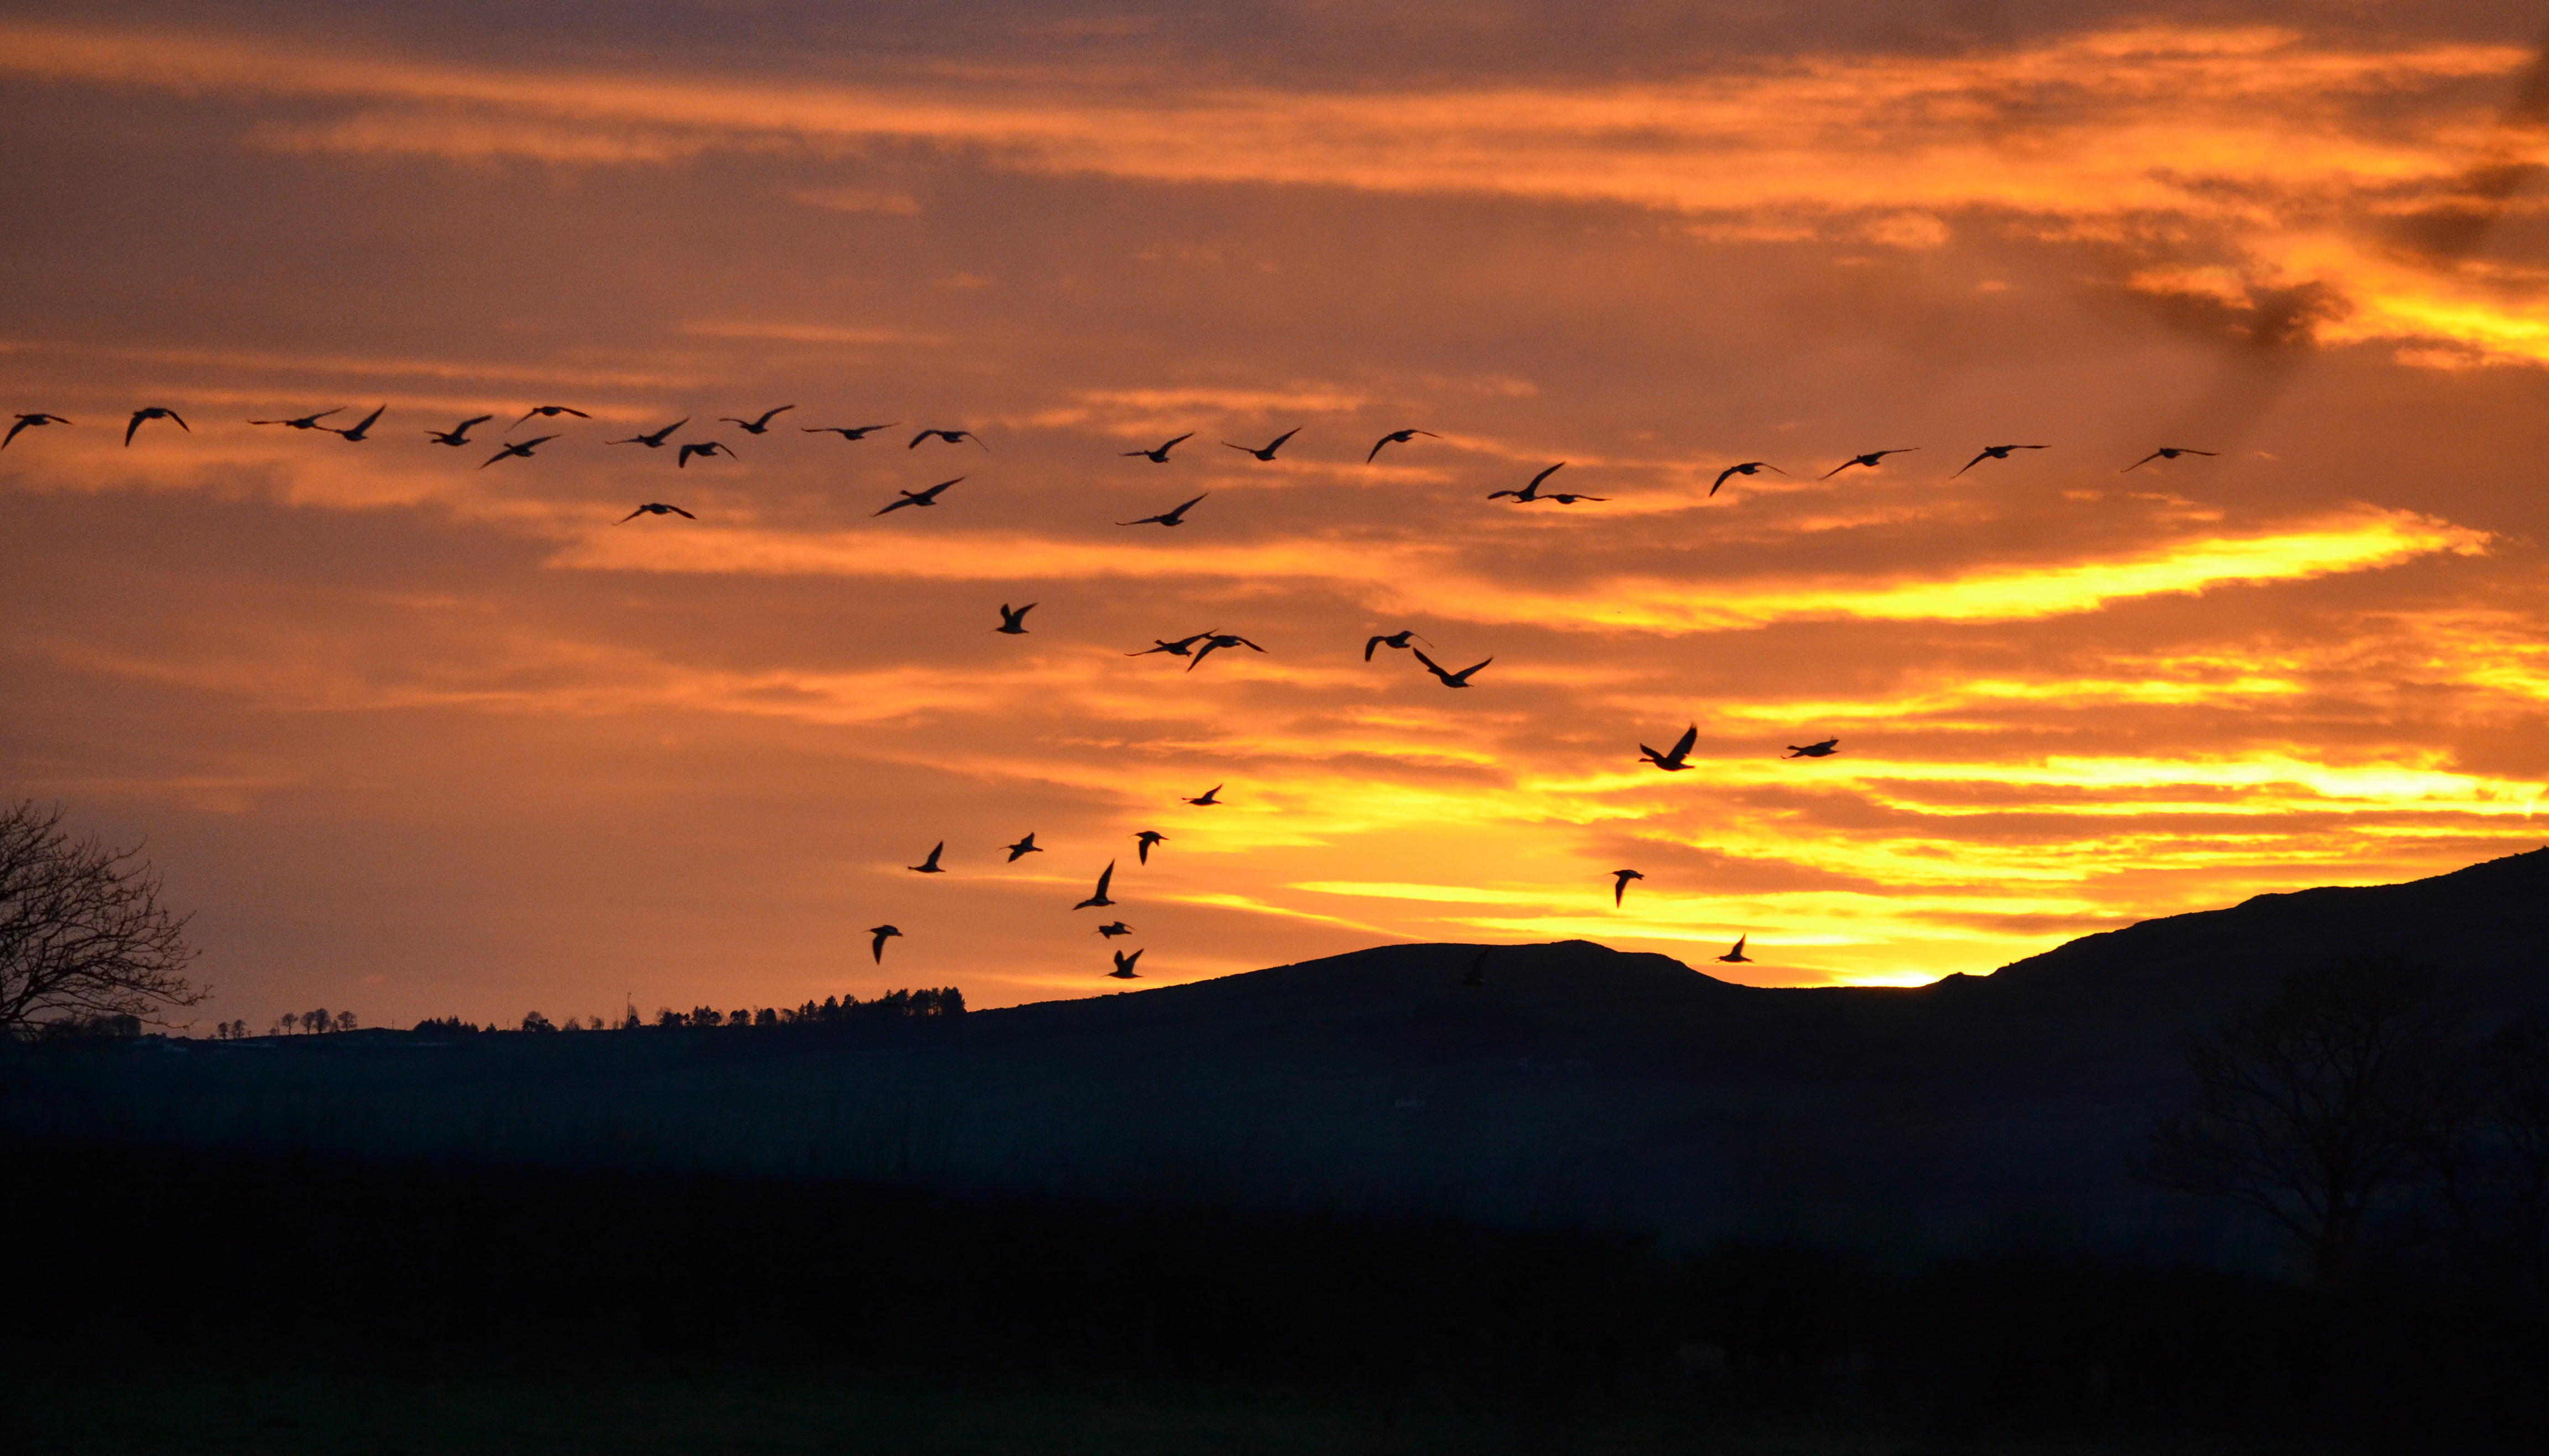 Barnacle Geese against setting sun